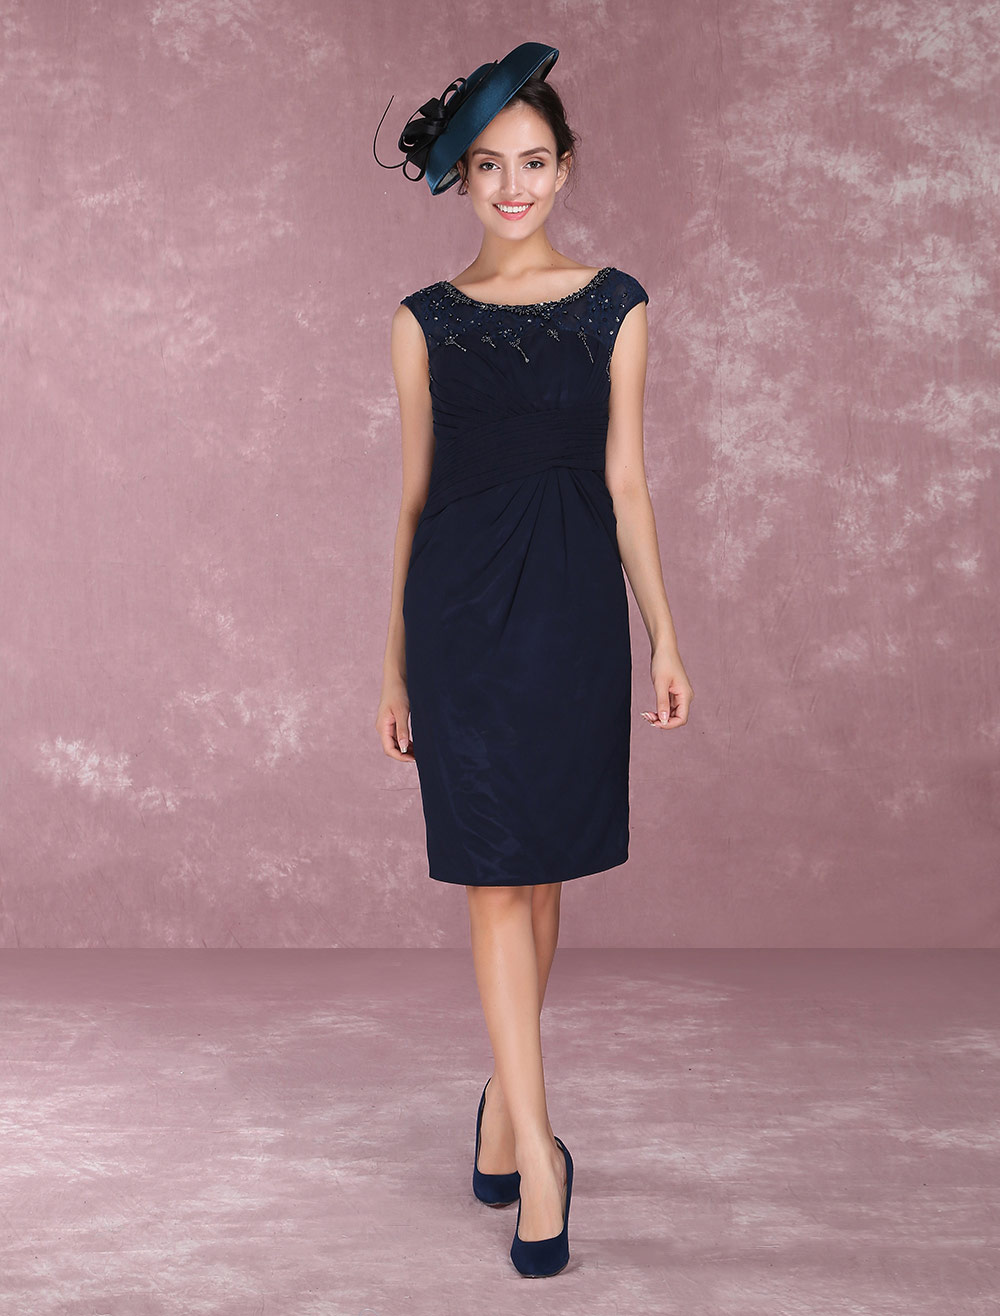 Dark Navy Mother Of The Bride Dresses Chiffon Cocktail Dress Beading Sheath Knee Length Wedding Guest Dresses